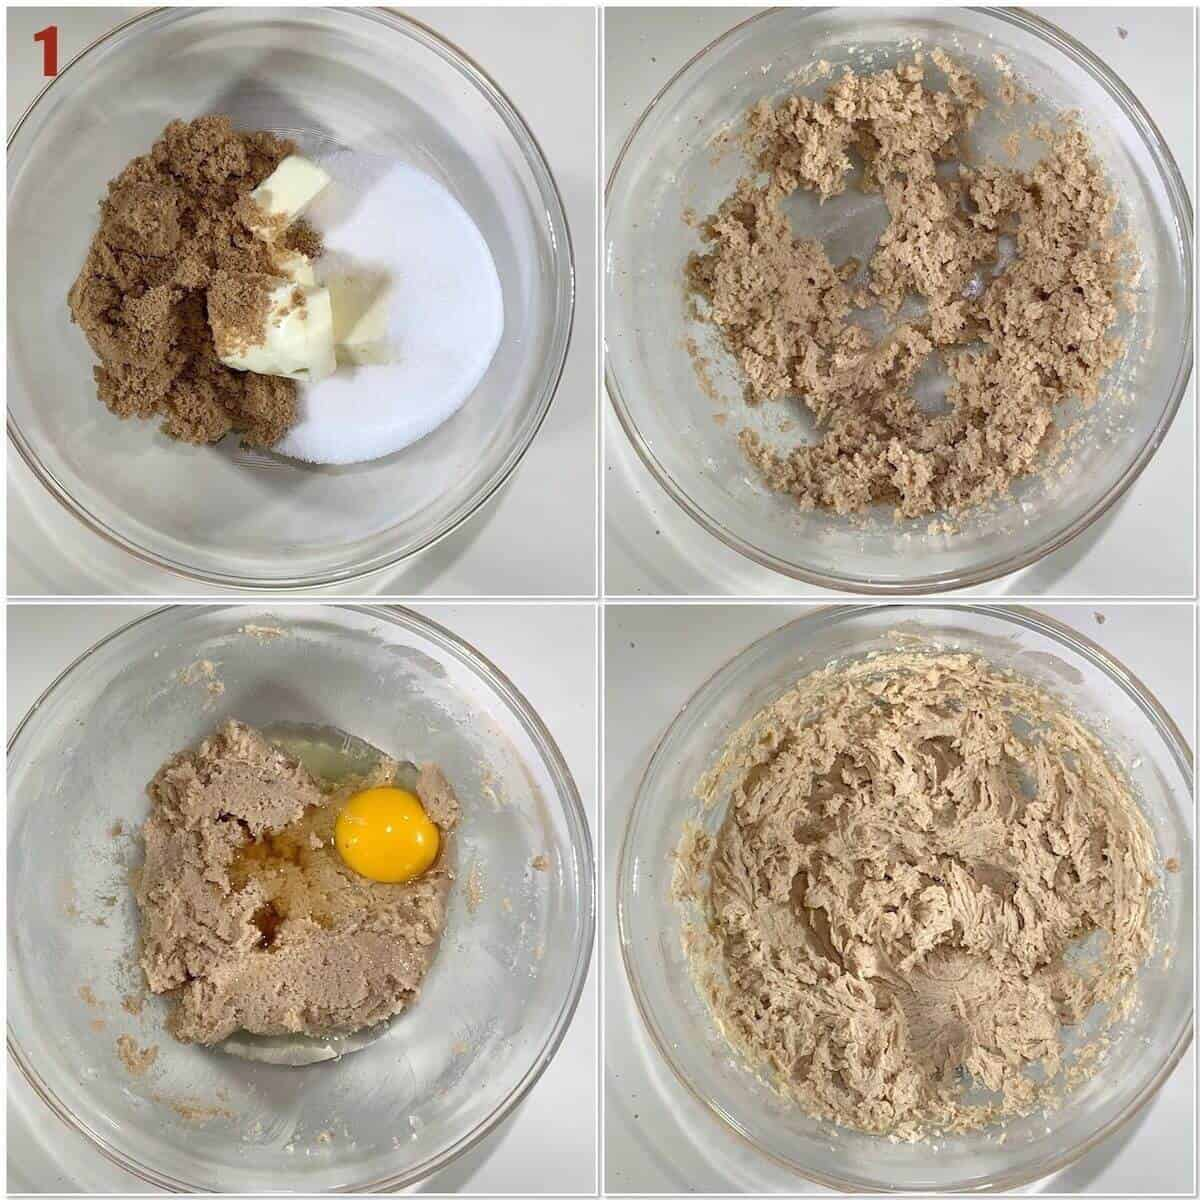 Collage of creaming butter with sugar & adding egg to cookie dough.